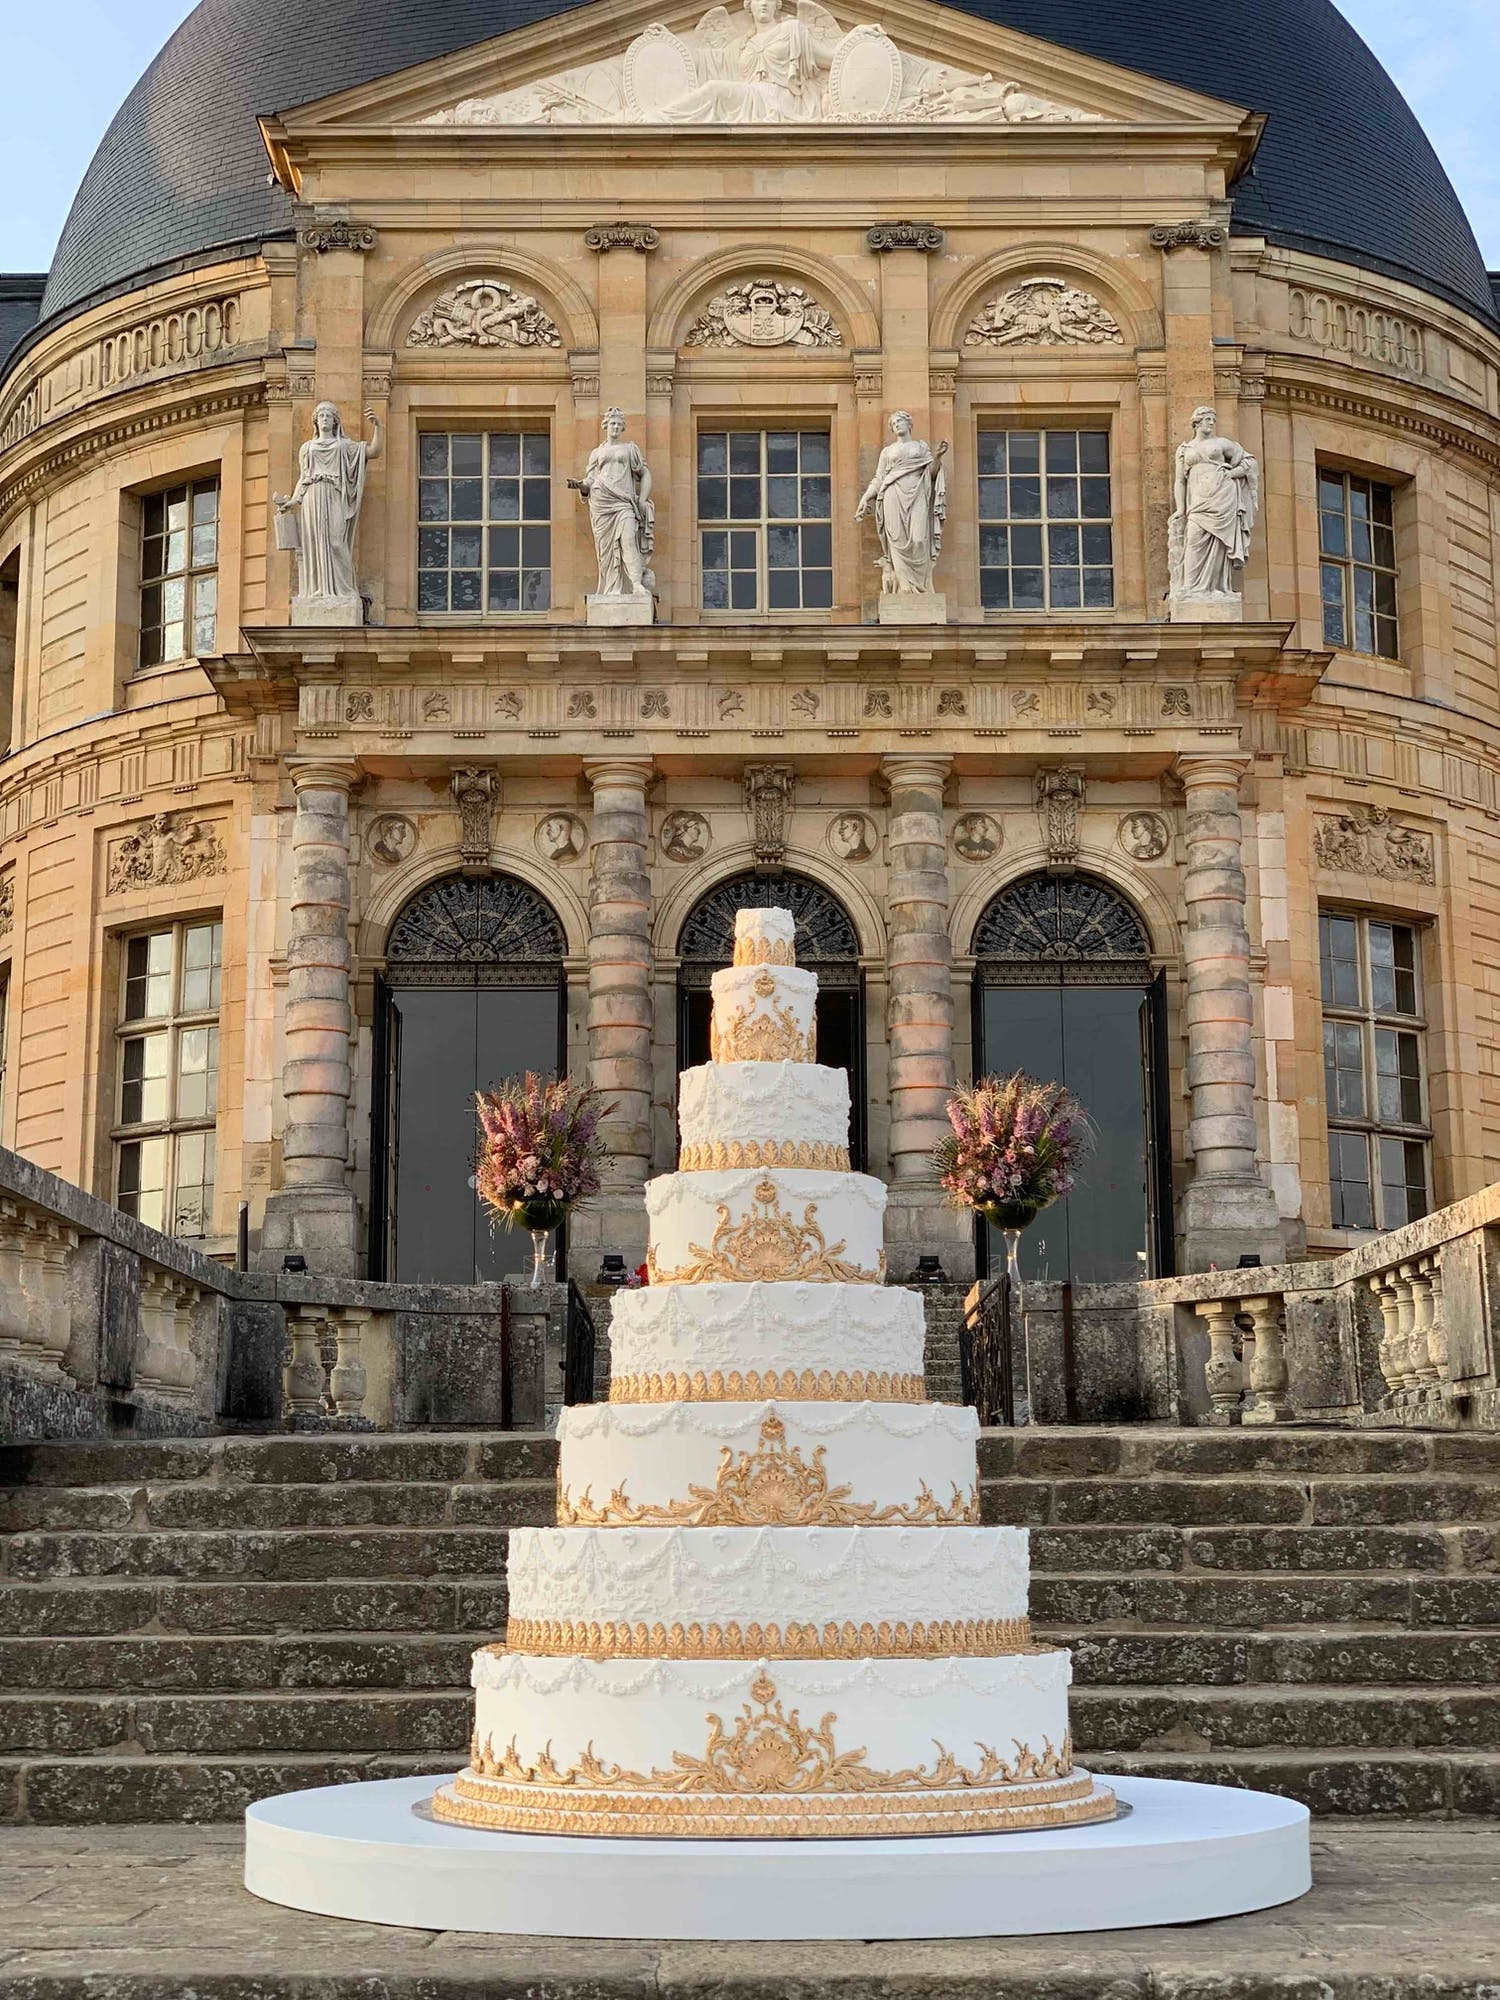 Towering eight tier white wedding cake with ornate gold icing designs | PartySlate